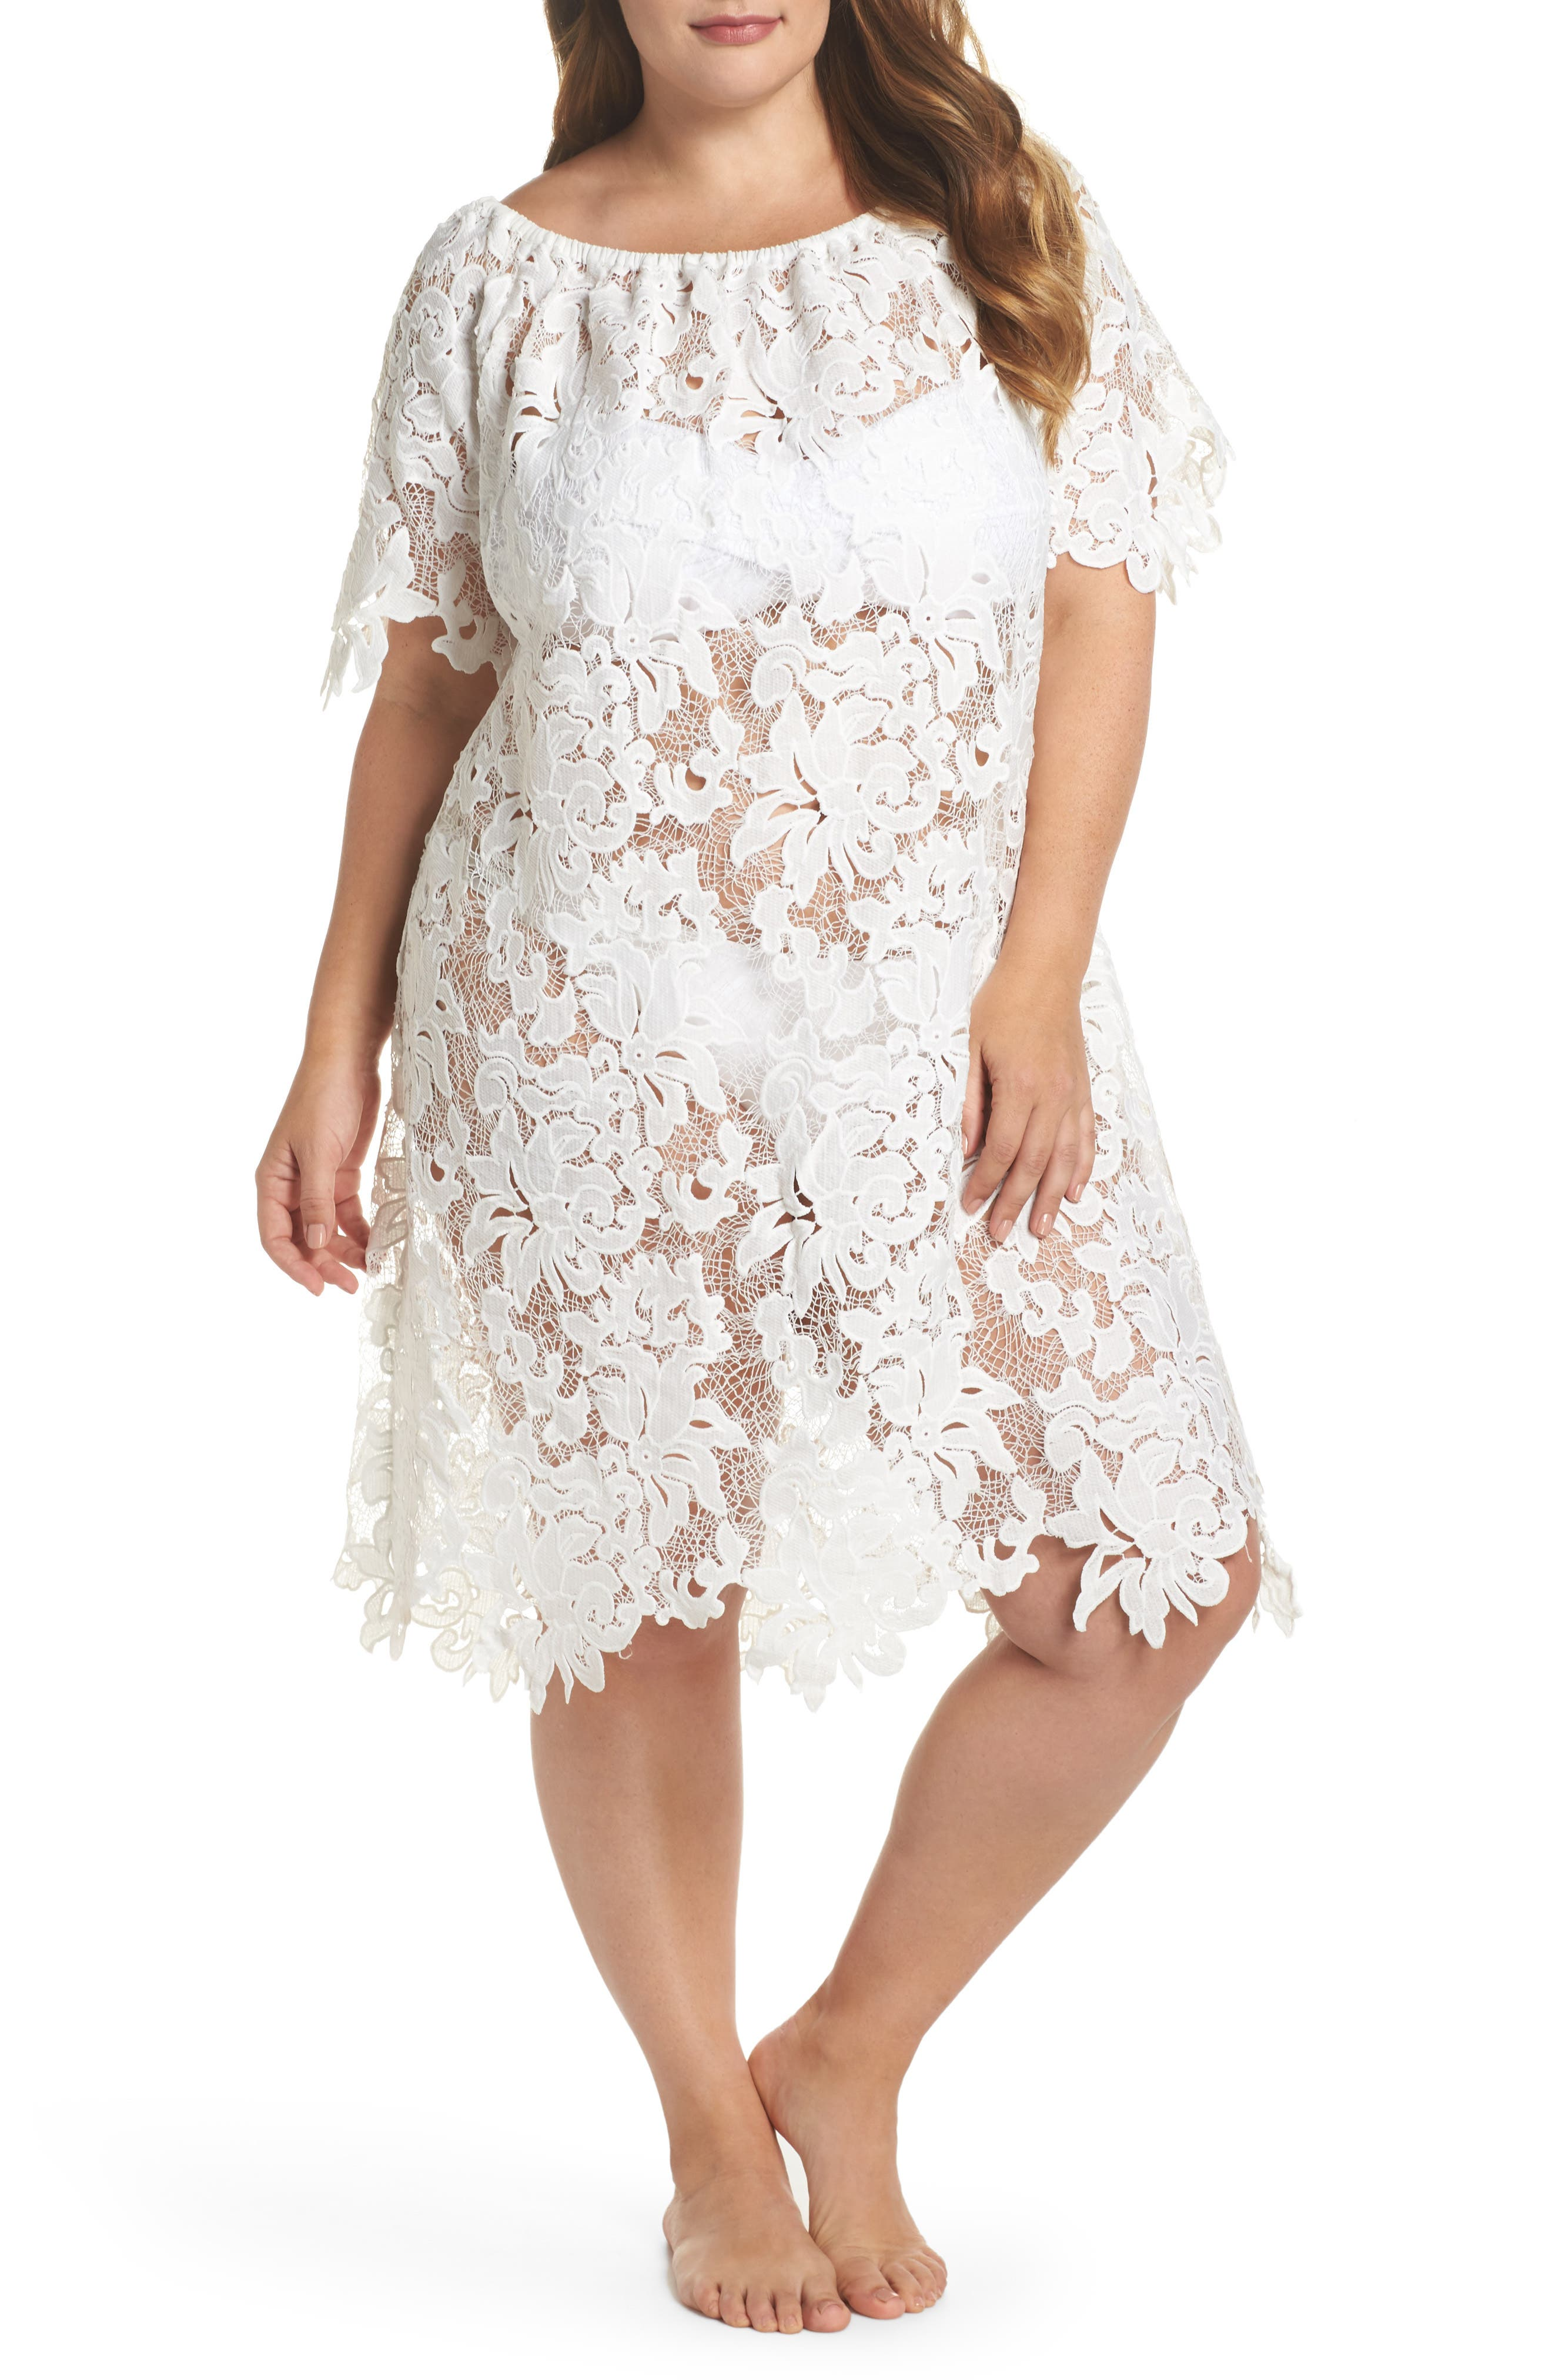 Ode Lace Cover-Up Dress,                         Main,                         color, 100